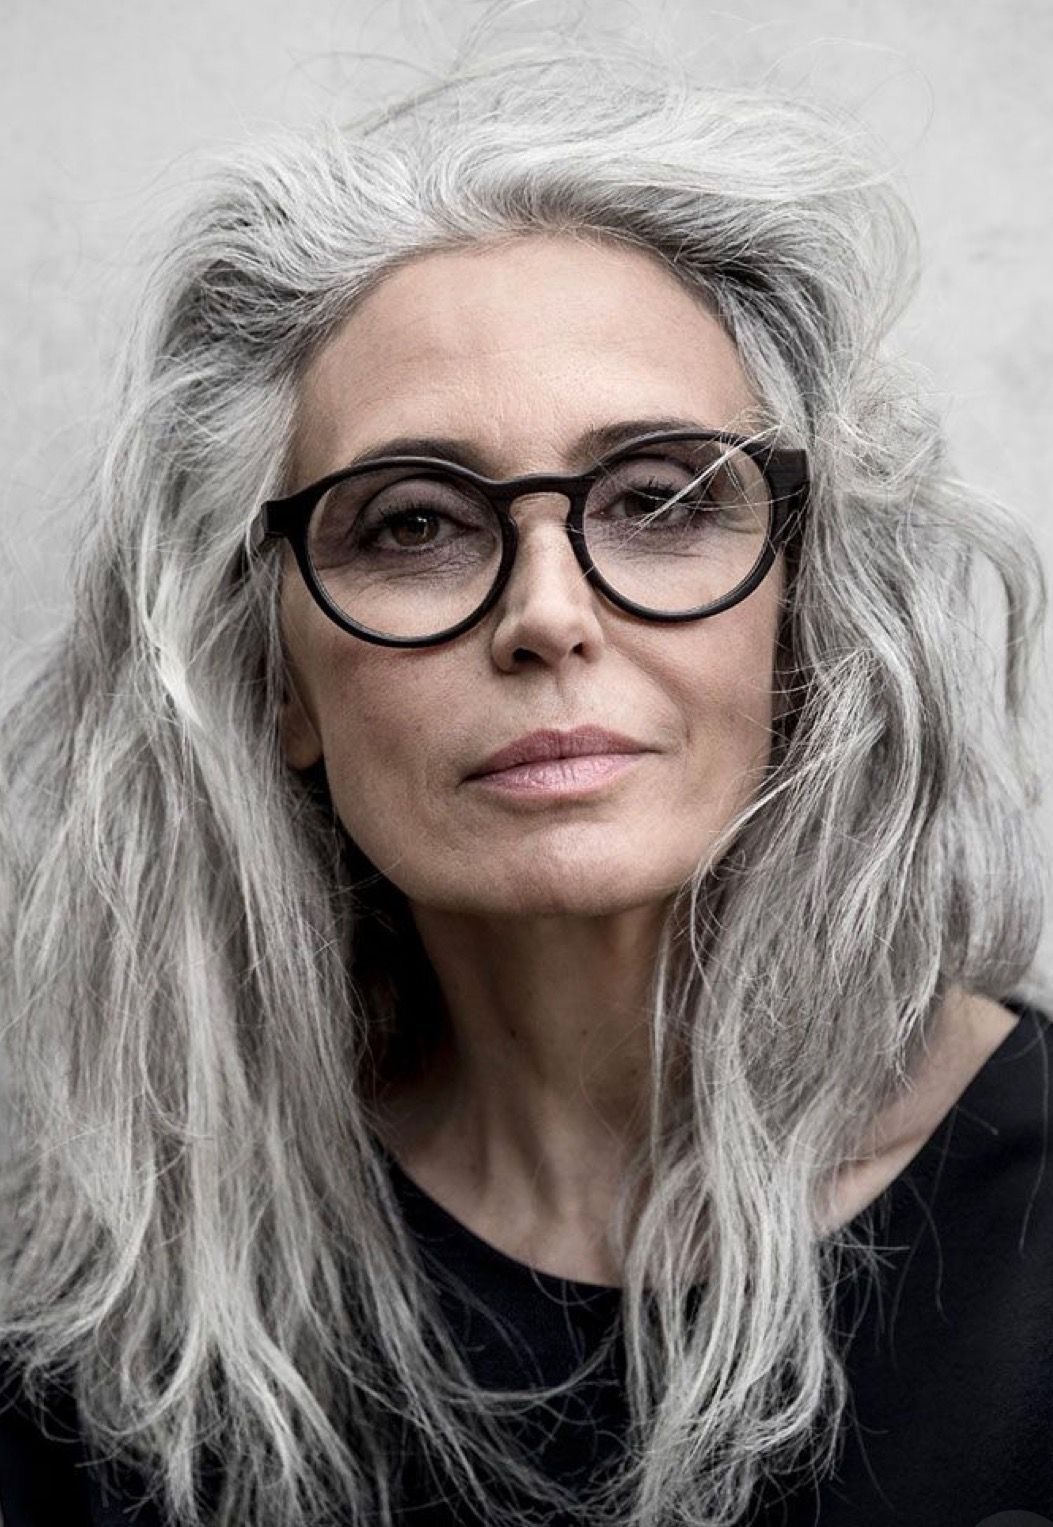 Grey And Beautiful Welcome To My Women Over 40 Inspiration Board Womenover40 Womenover50 Womenover60 Women Ageless Beauty Silver Hair Beautiful Gray Hair